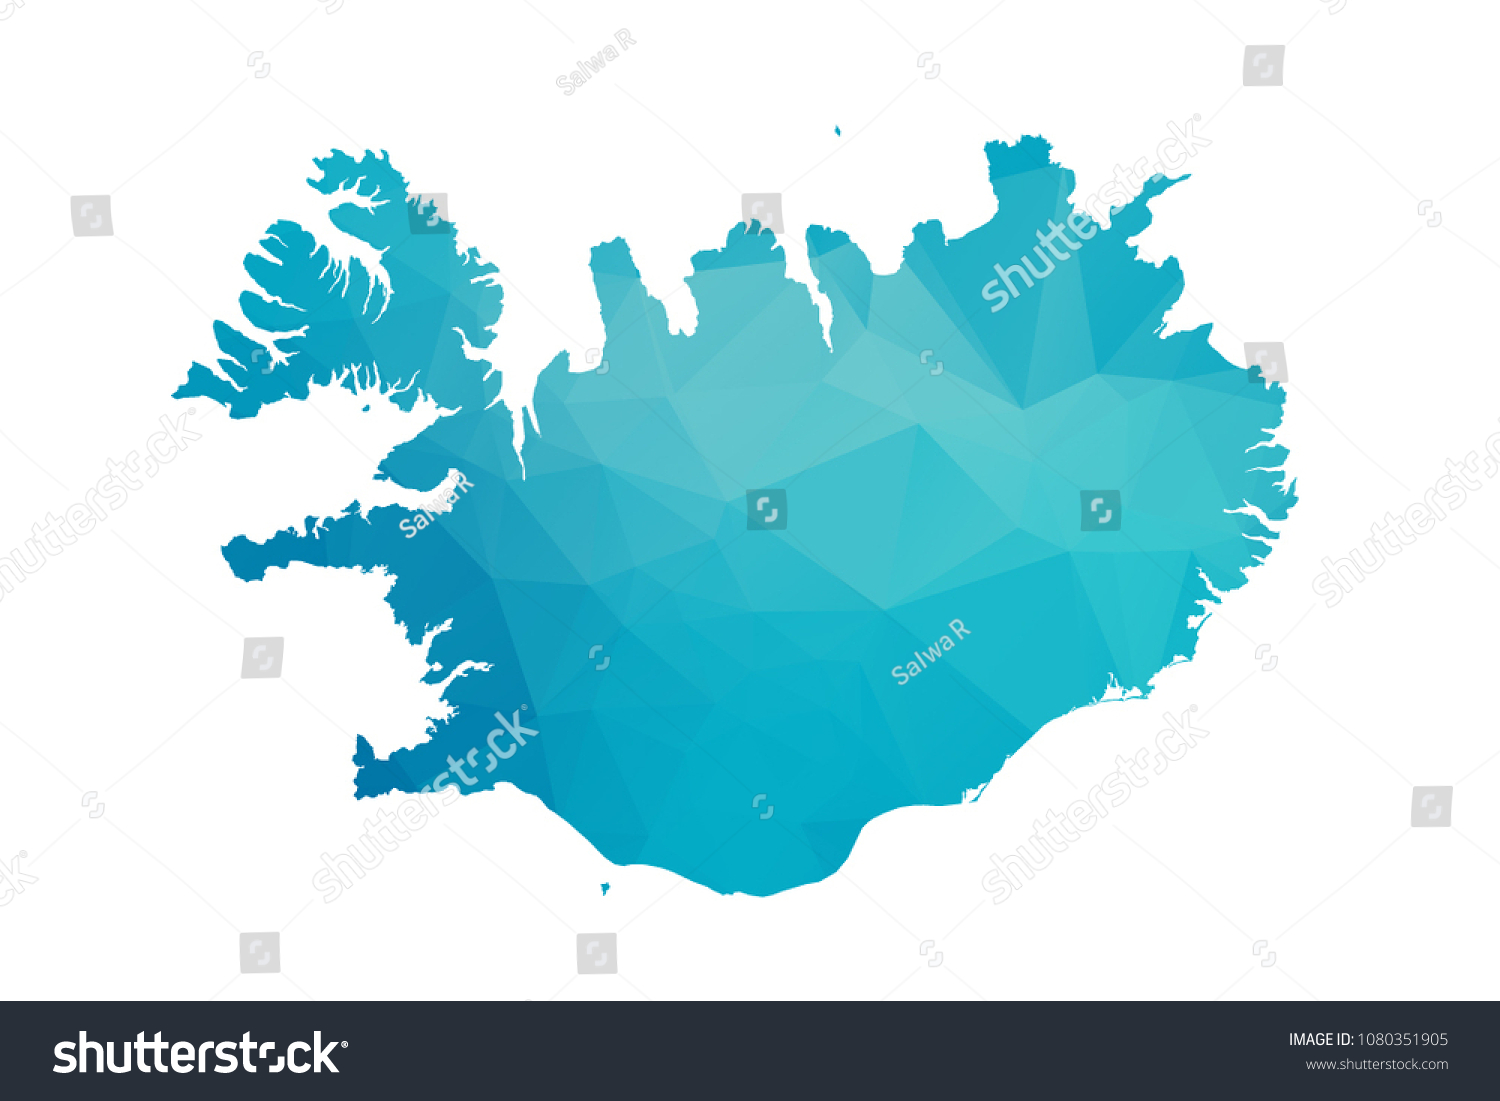 Iceland Map Vector Illustration Polygonal Style Low Stock Vector ...